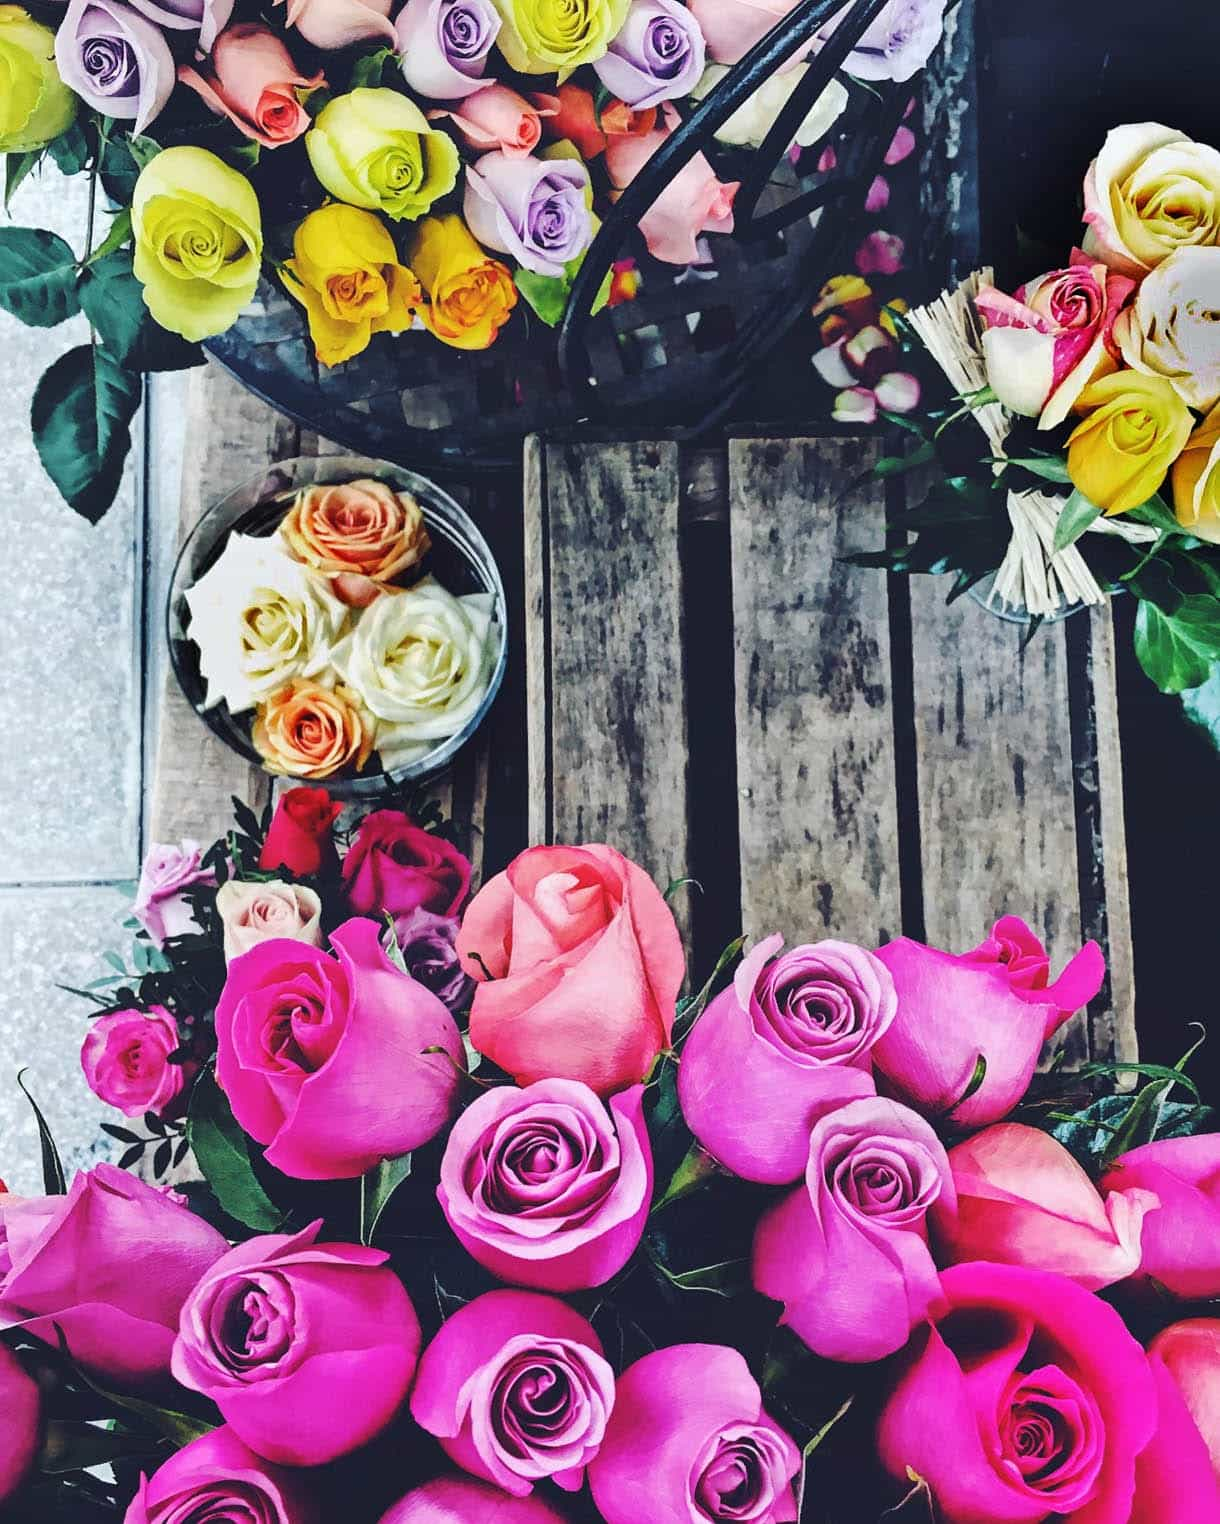 A Paris vacation without plans: Flower Market in Paris - rose bouquet